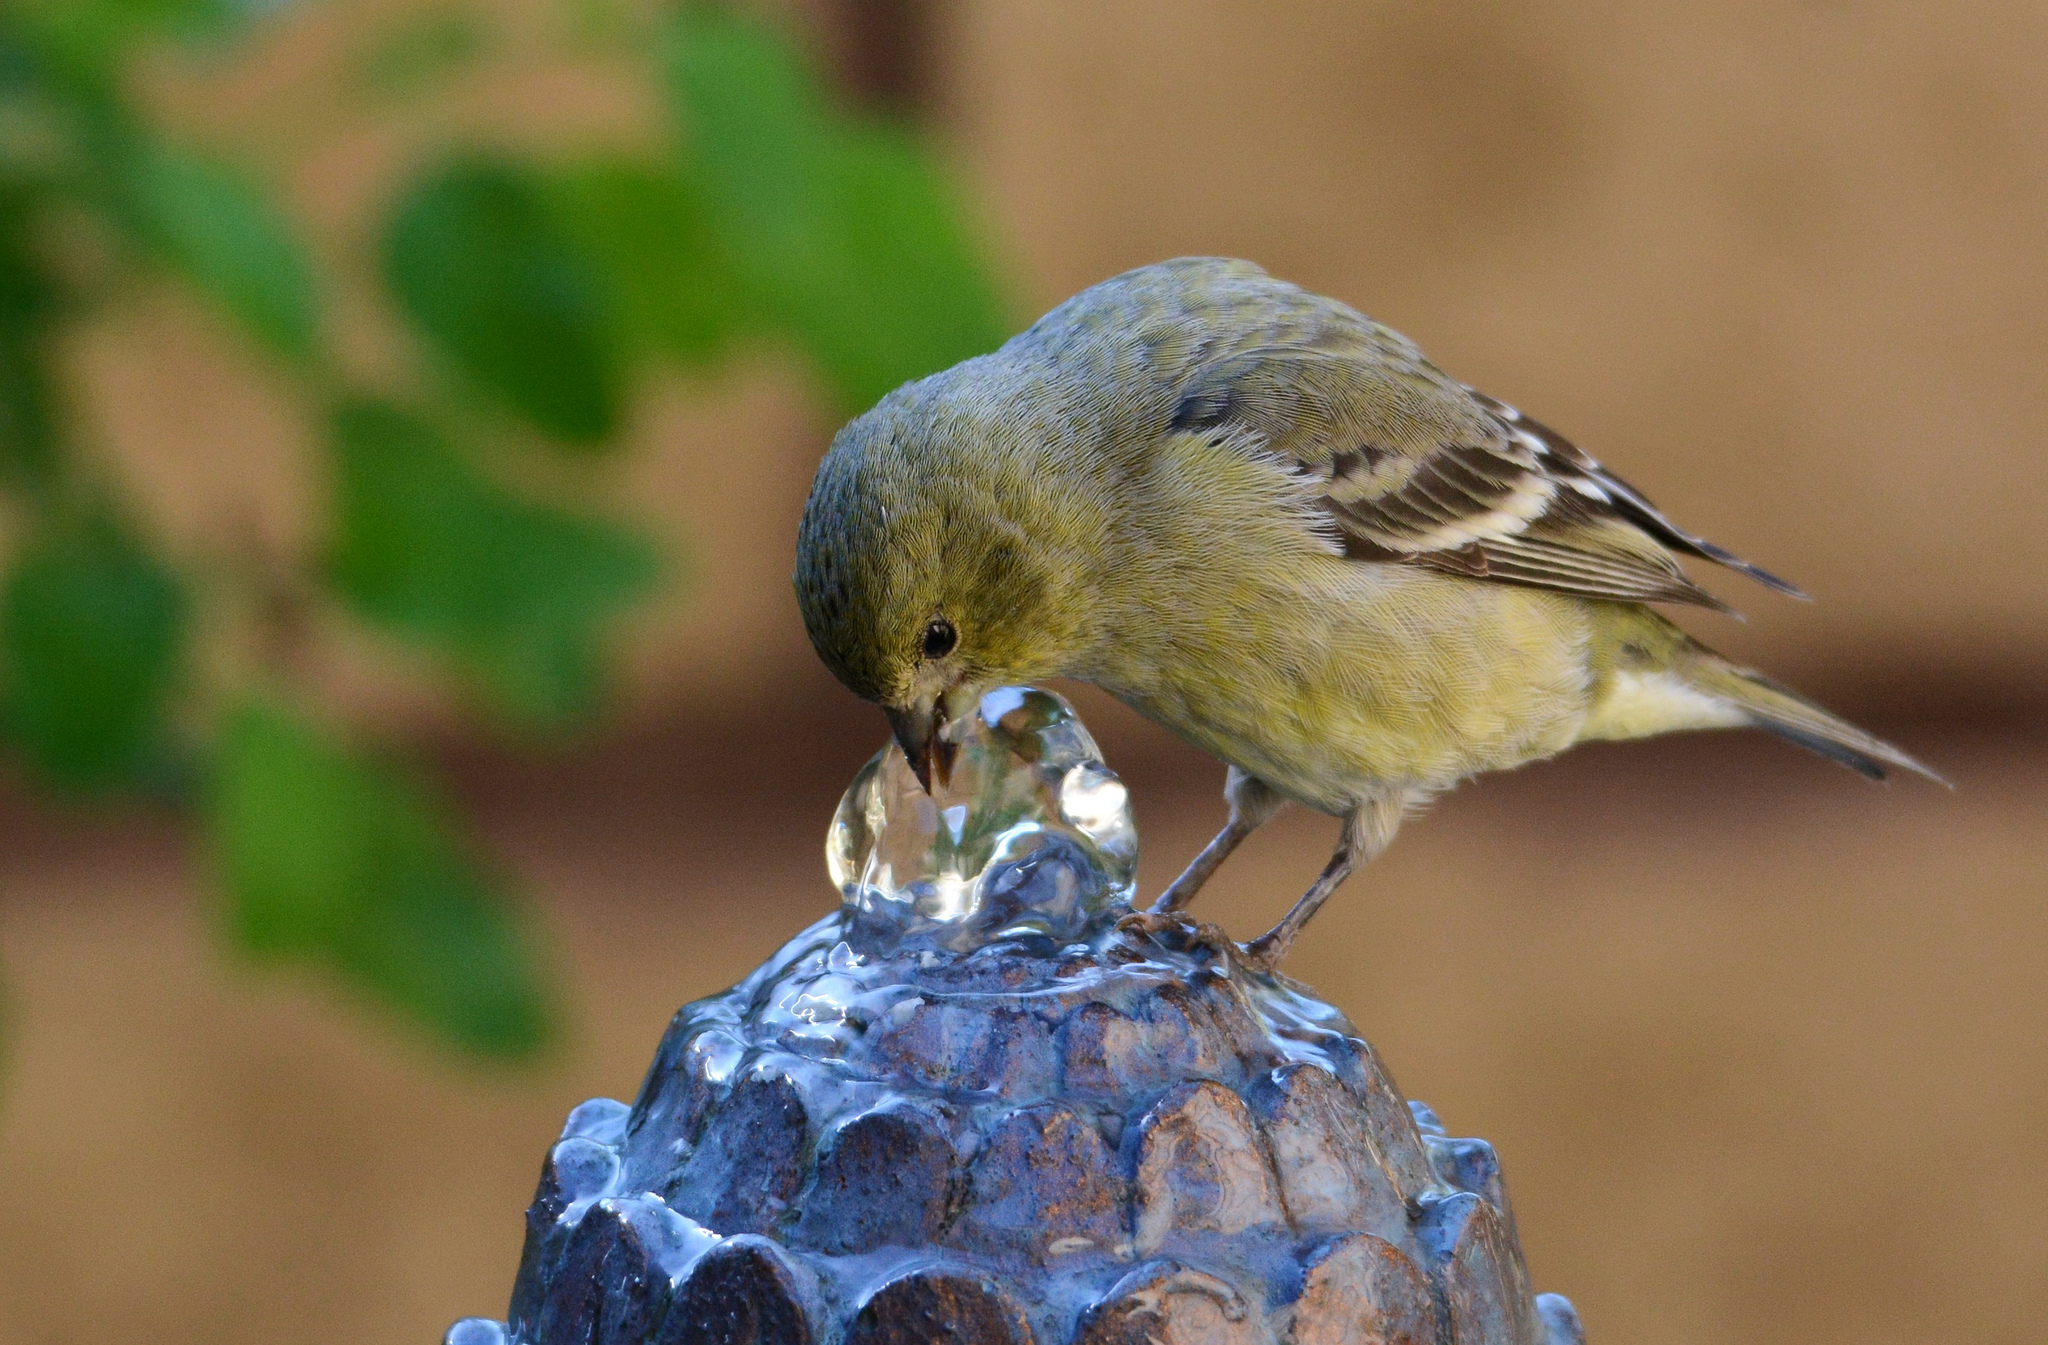 8 Ways to Make Your Home Bird-Friendly